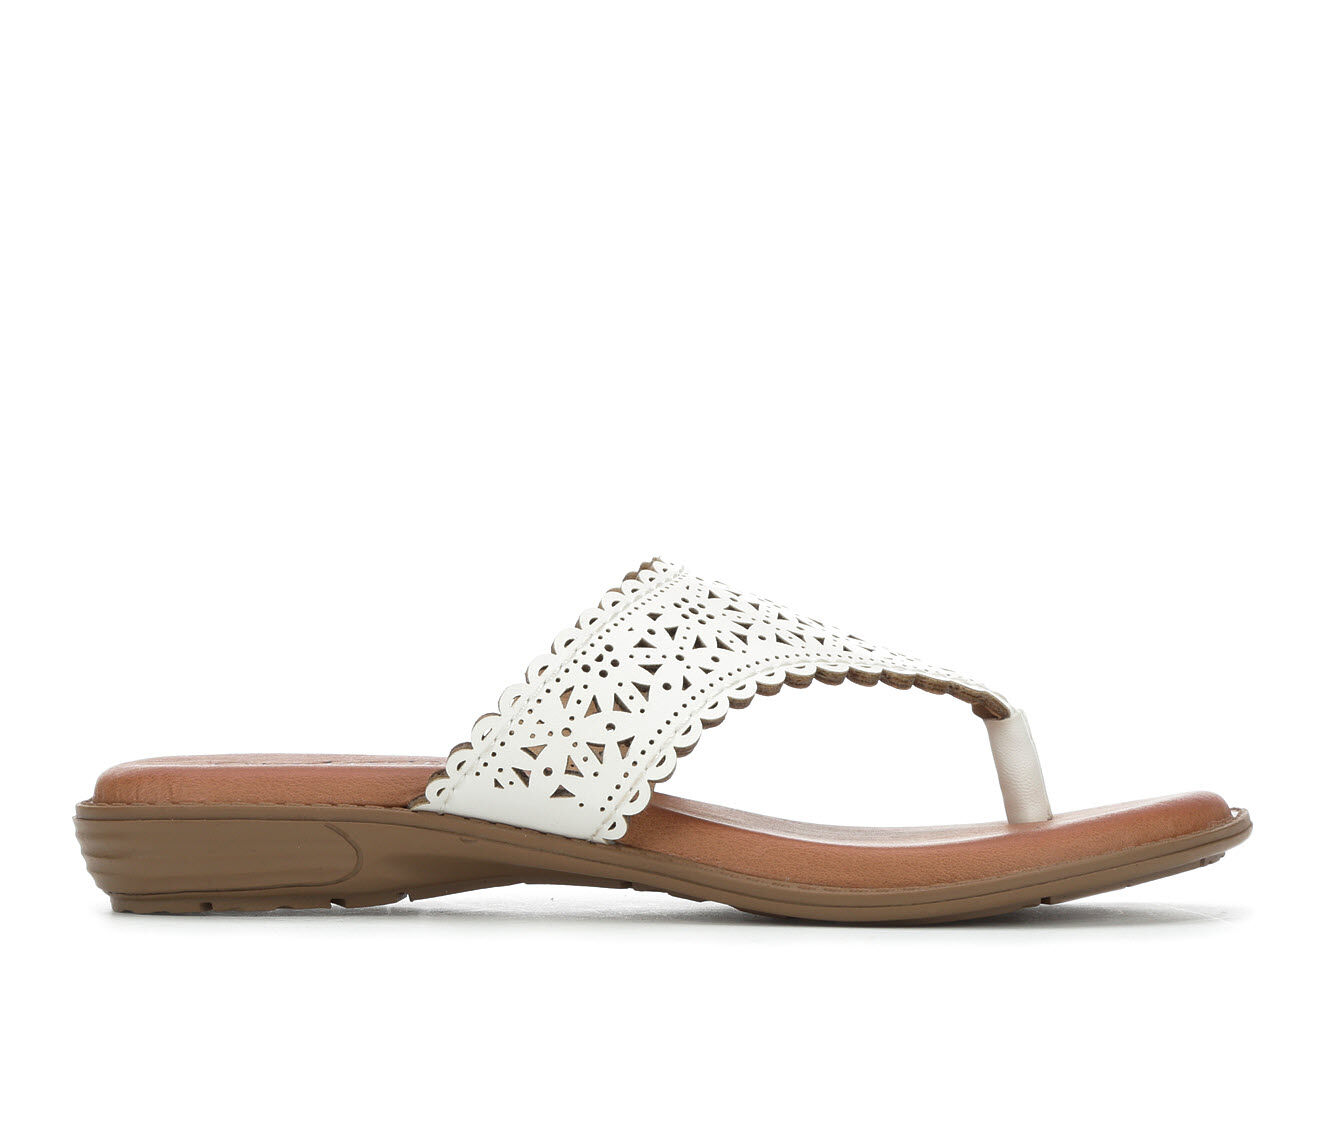 purchase comfortable Women's City Classified Quirk Sandals White